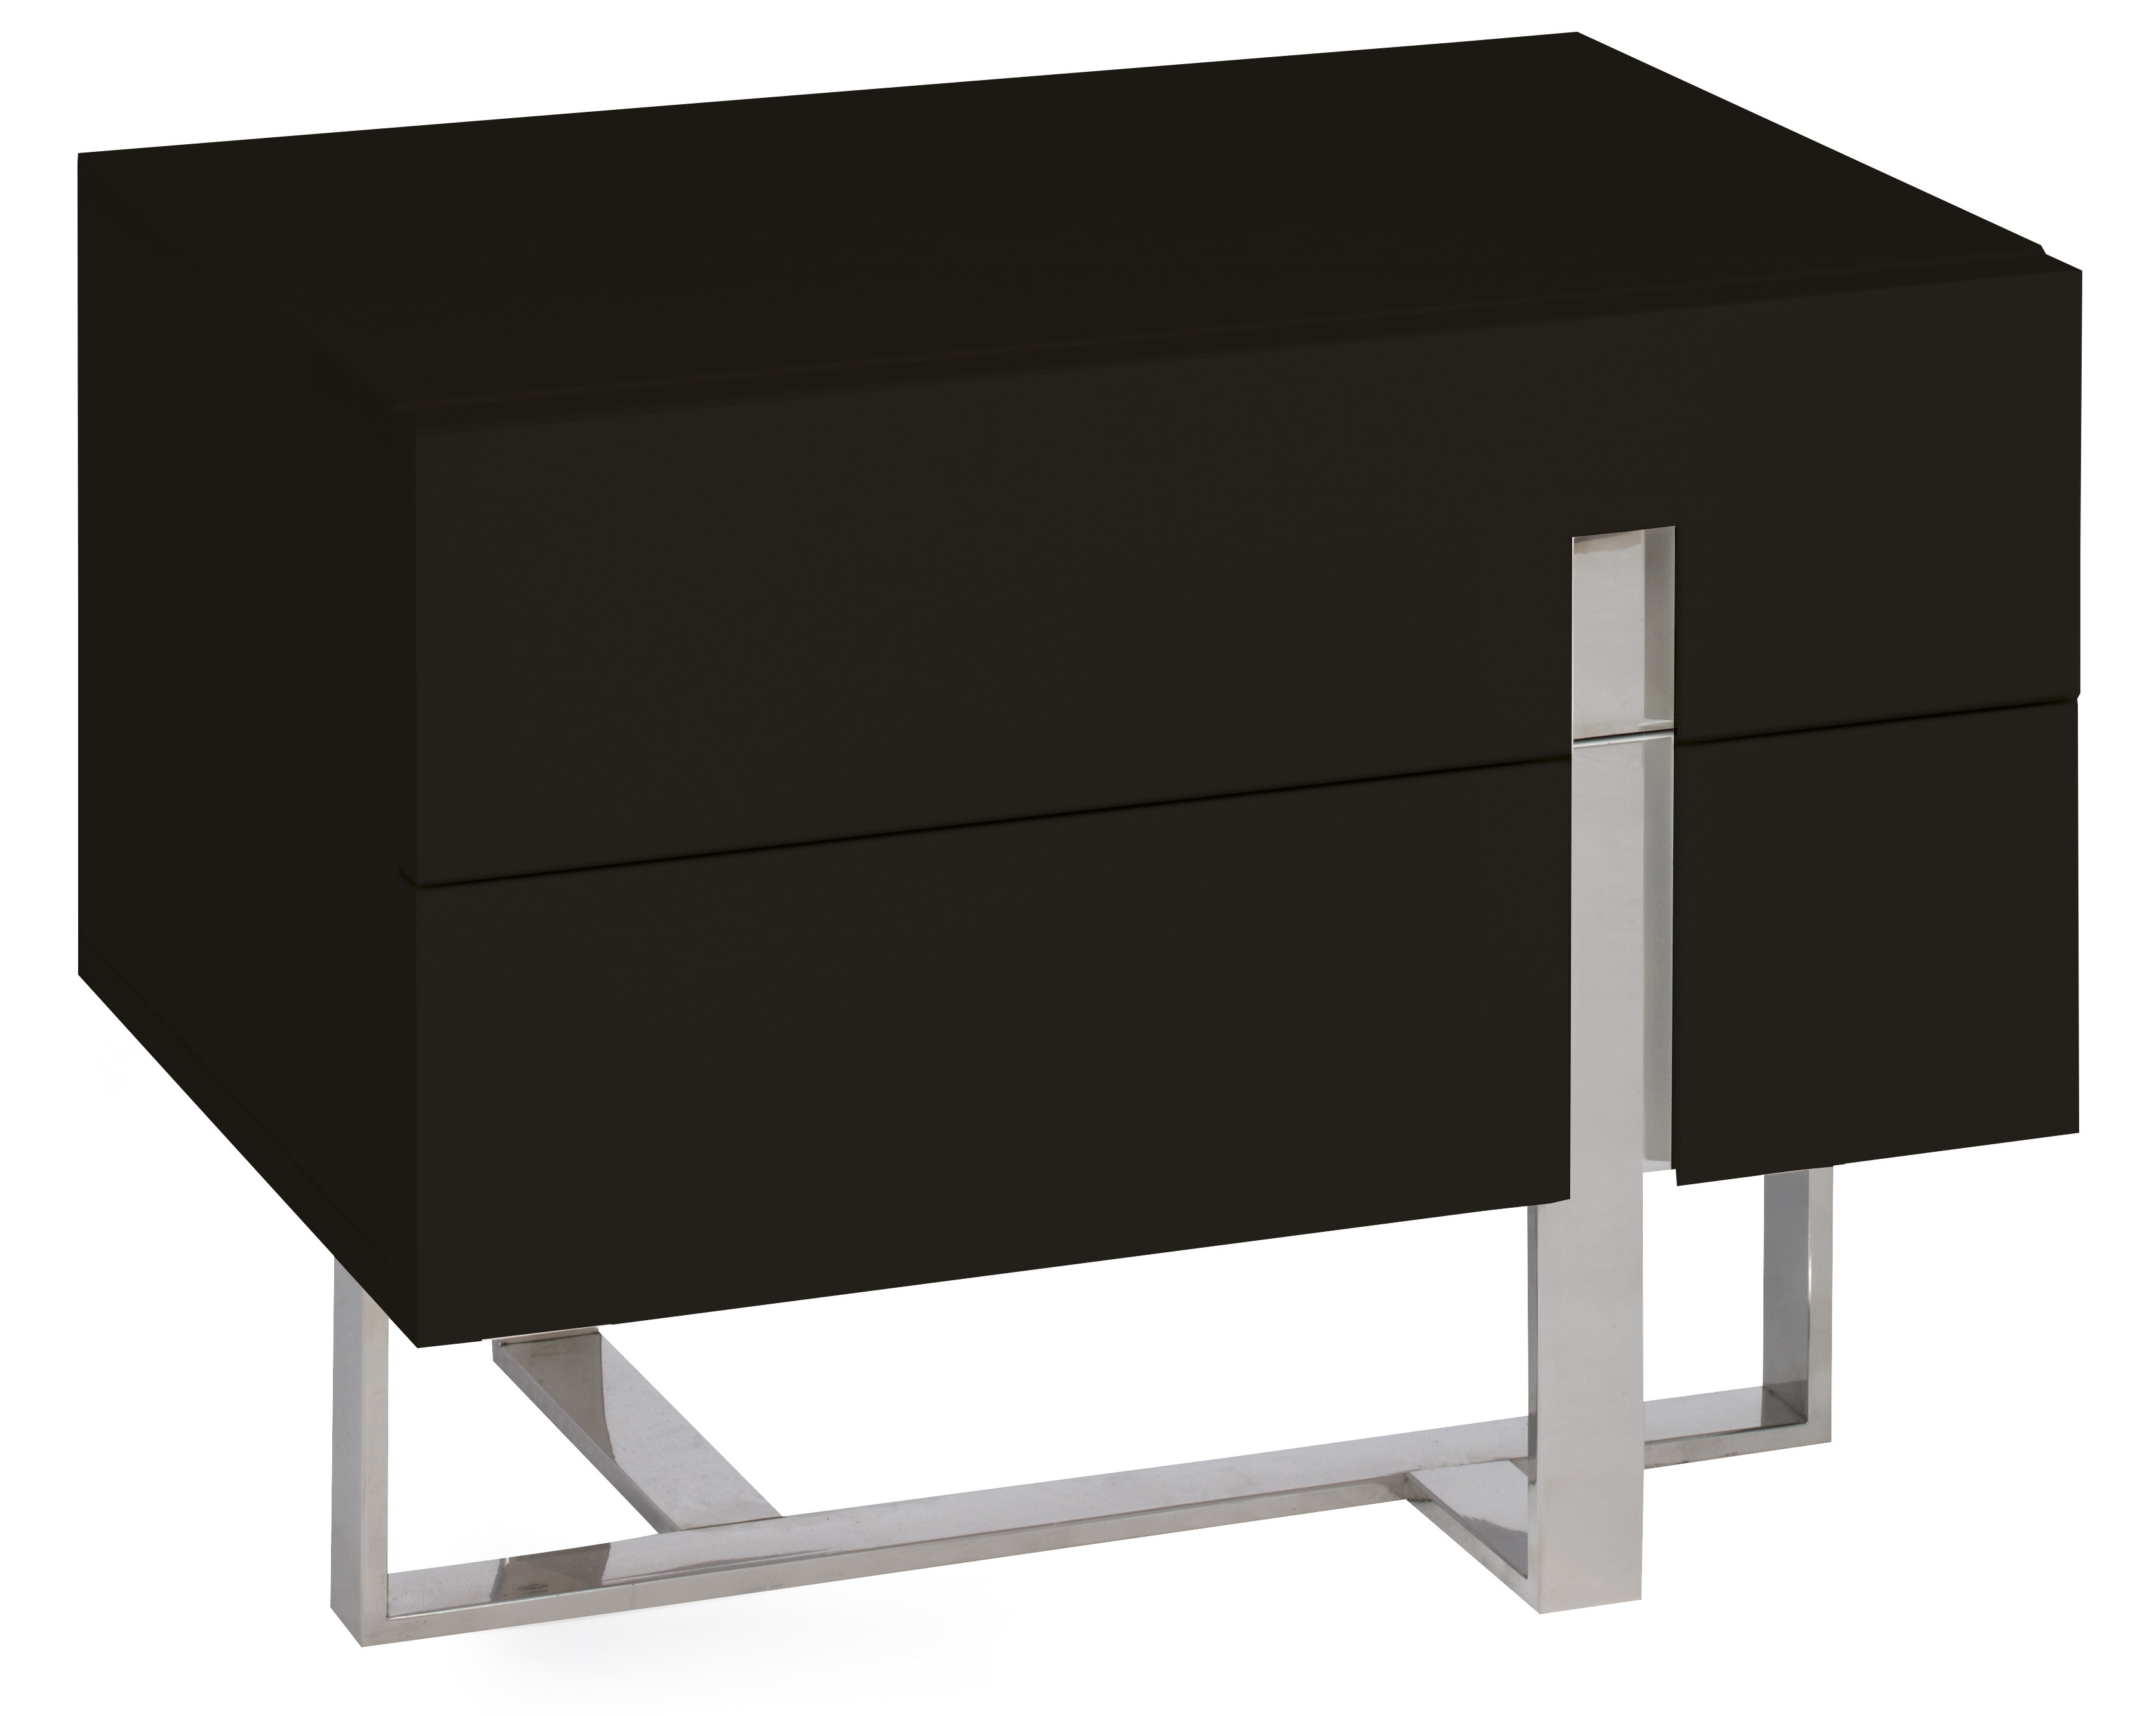 table de chevet moderne noir laqu et acier dezina. Black Bedroom Furniture Sets. Home Design Ideas